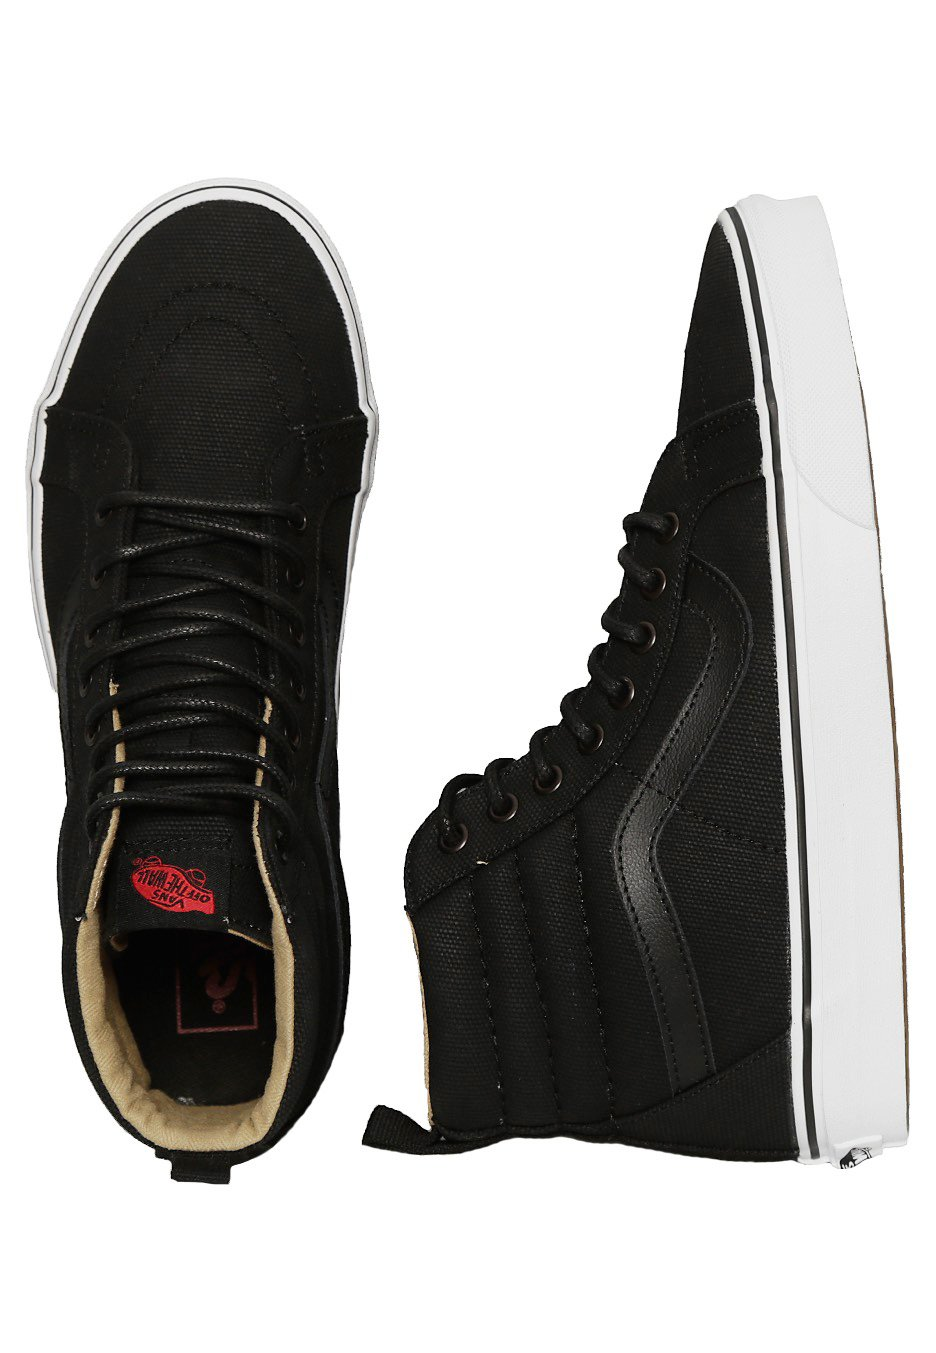 c4786ffcaa Vans - Sk8-Hi Reissue PT Military Twill Black True White - Girl Shoes -  Impericon.com UK